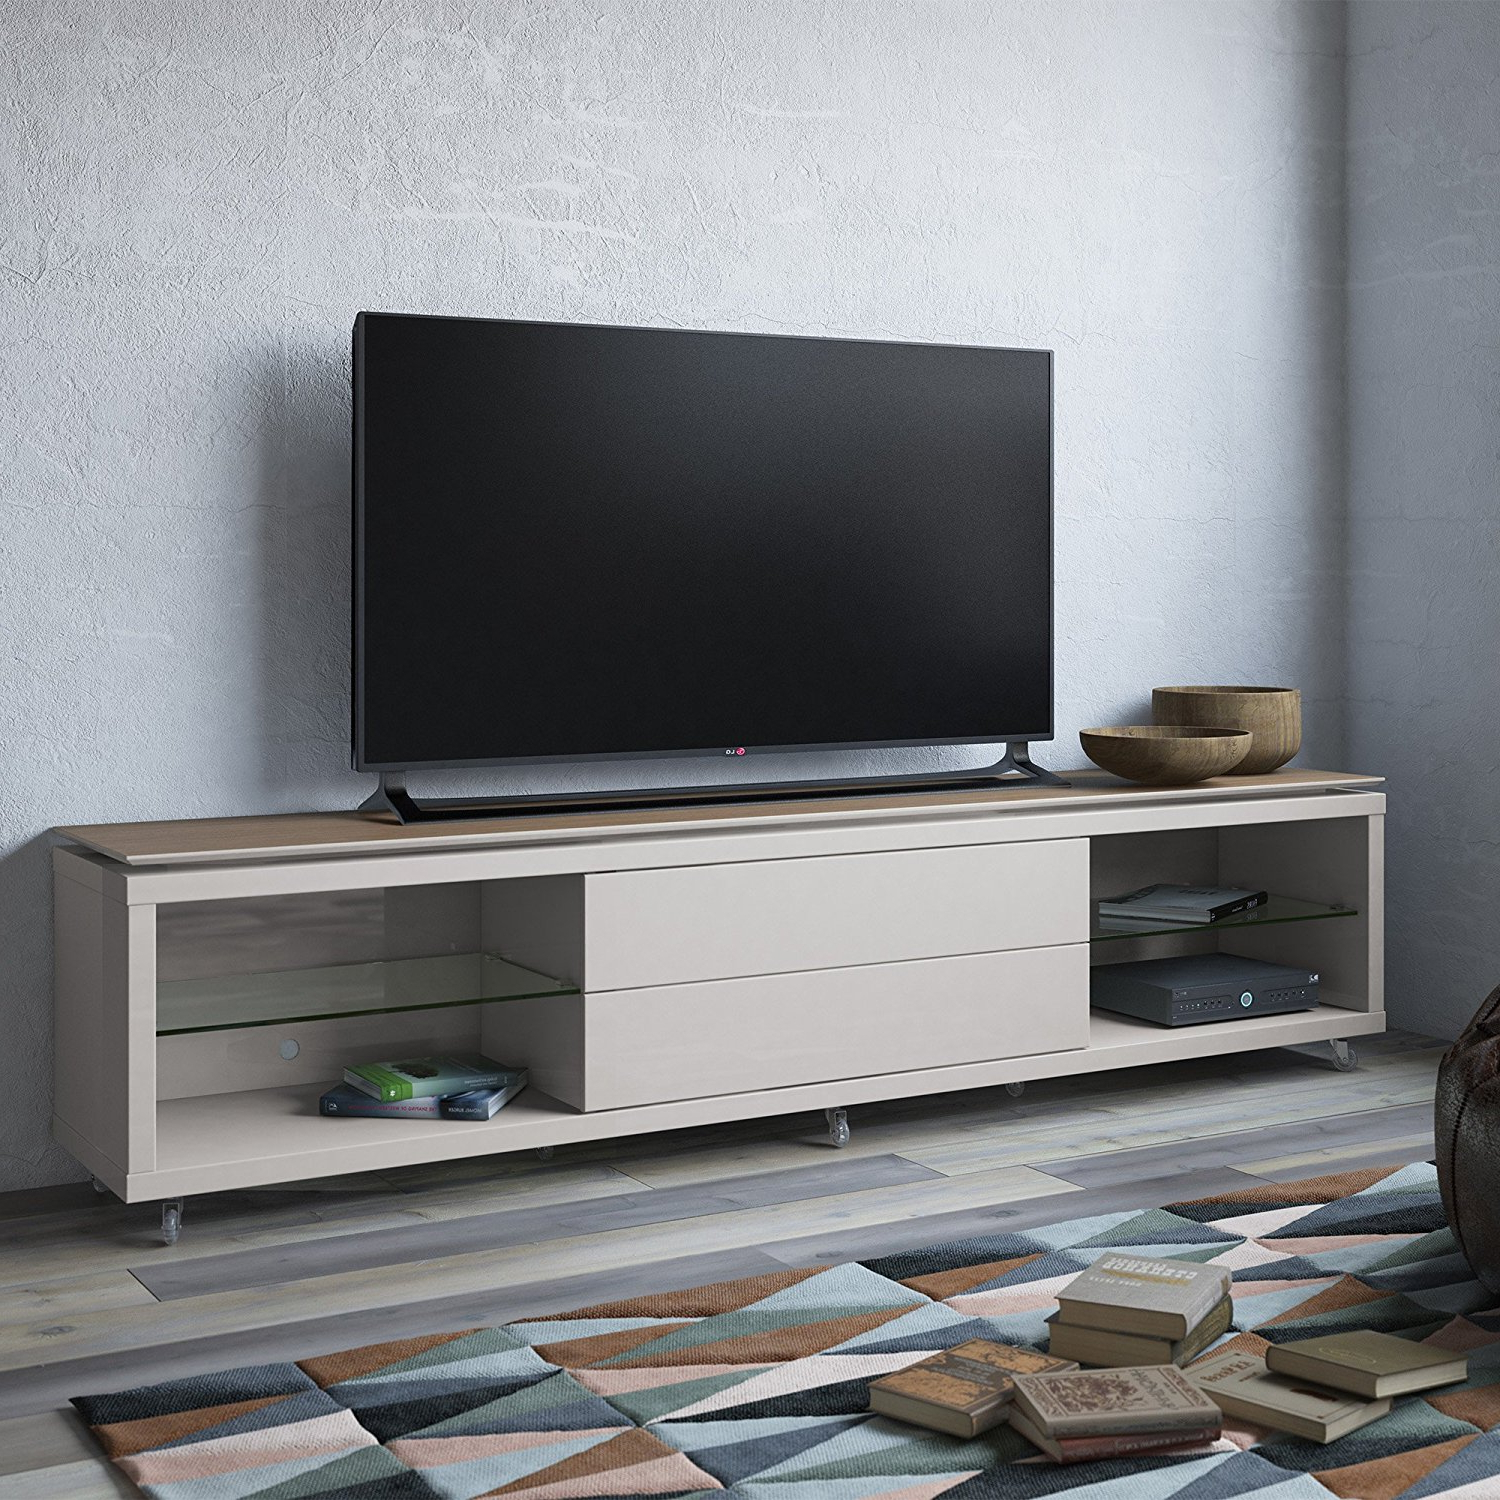 Furniture: Annabelle Black 70 Inch Tv Stand | Living Spaces Intended For Annabelle Cream 70 Inch Tv Stands (View 3 of 20)